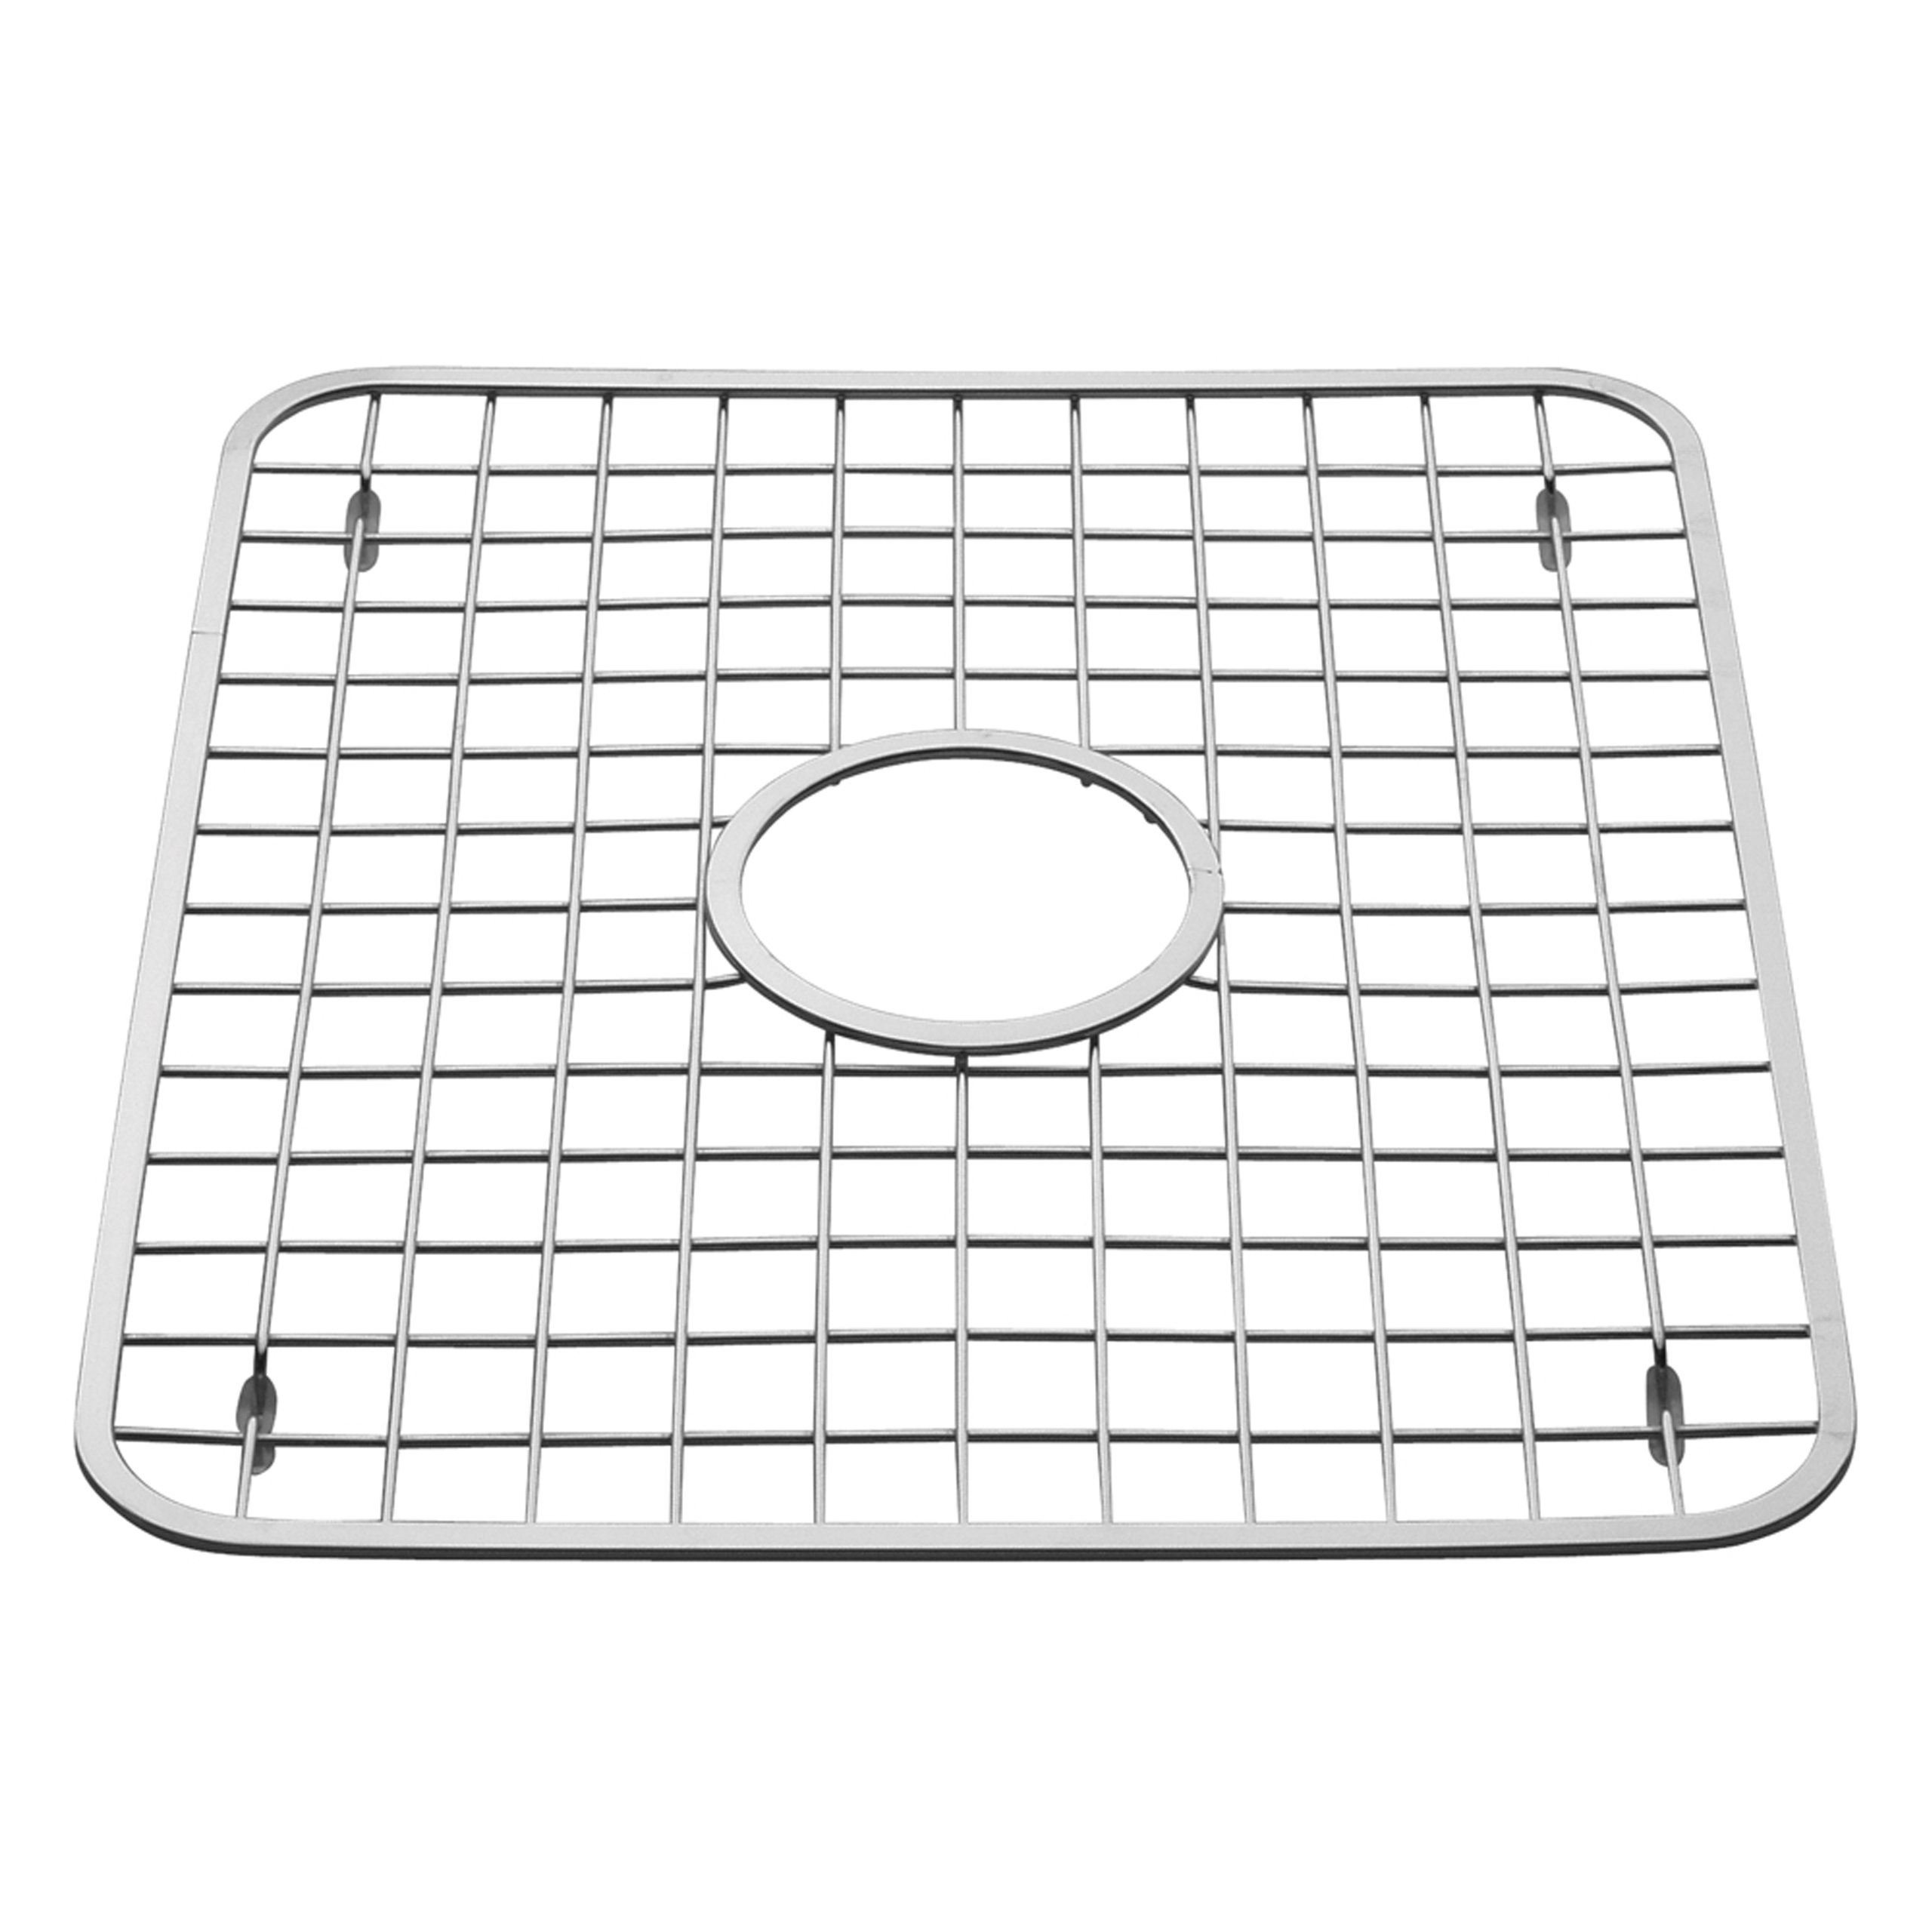 interdesign gia kitchen sink protector wire grid mat with center drain hole polished complete. Black Bedroom Furniture Sets. Home Design Ideas